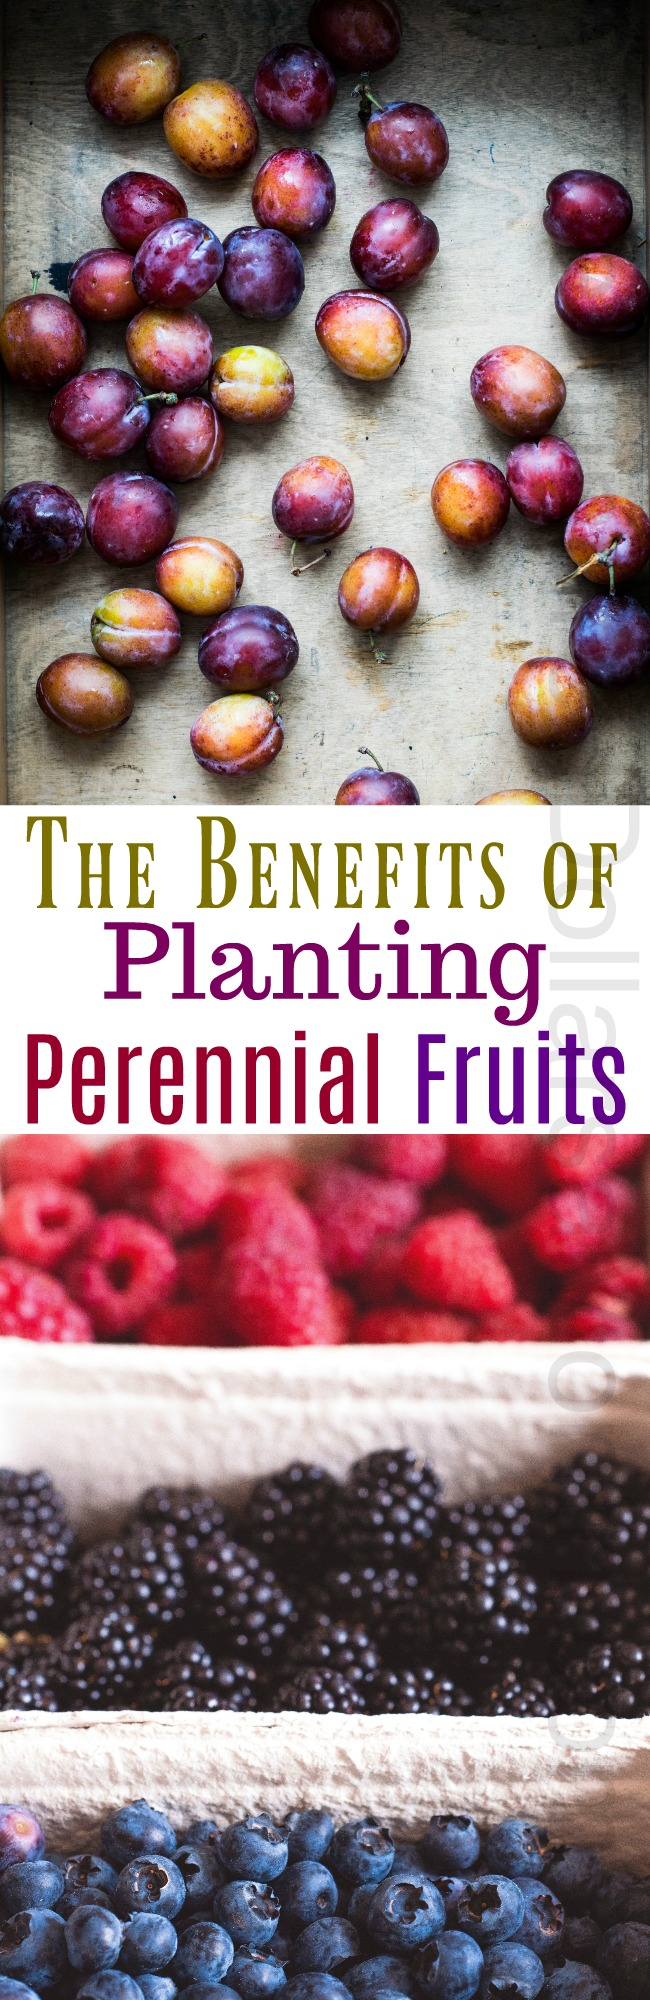 Planting Perennial Fruits